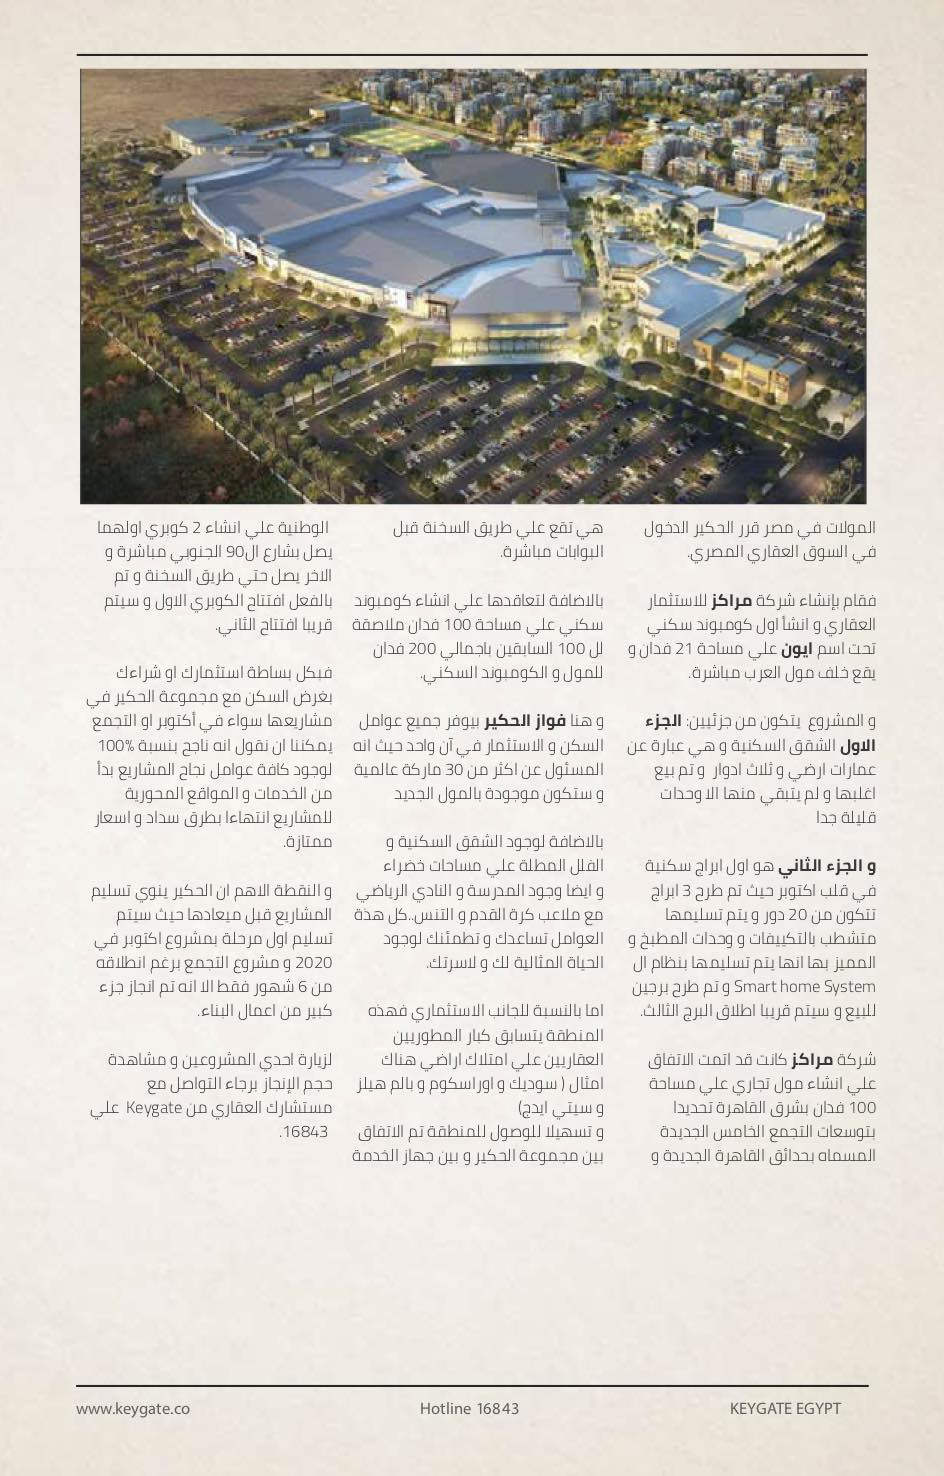 KeyGate-Real-Estate'-Newspaper-23-Aug-4.0-